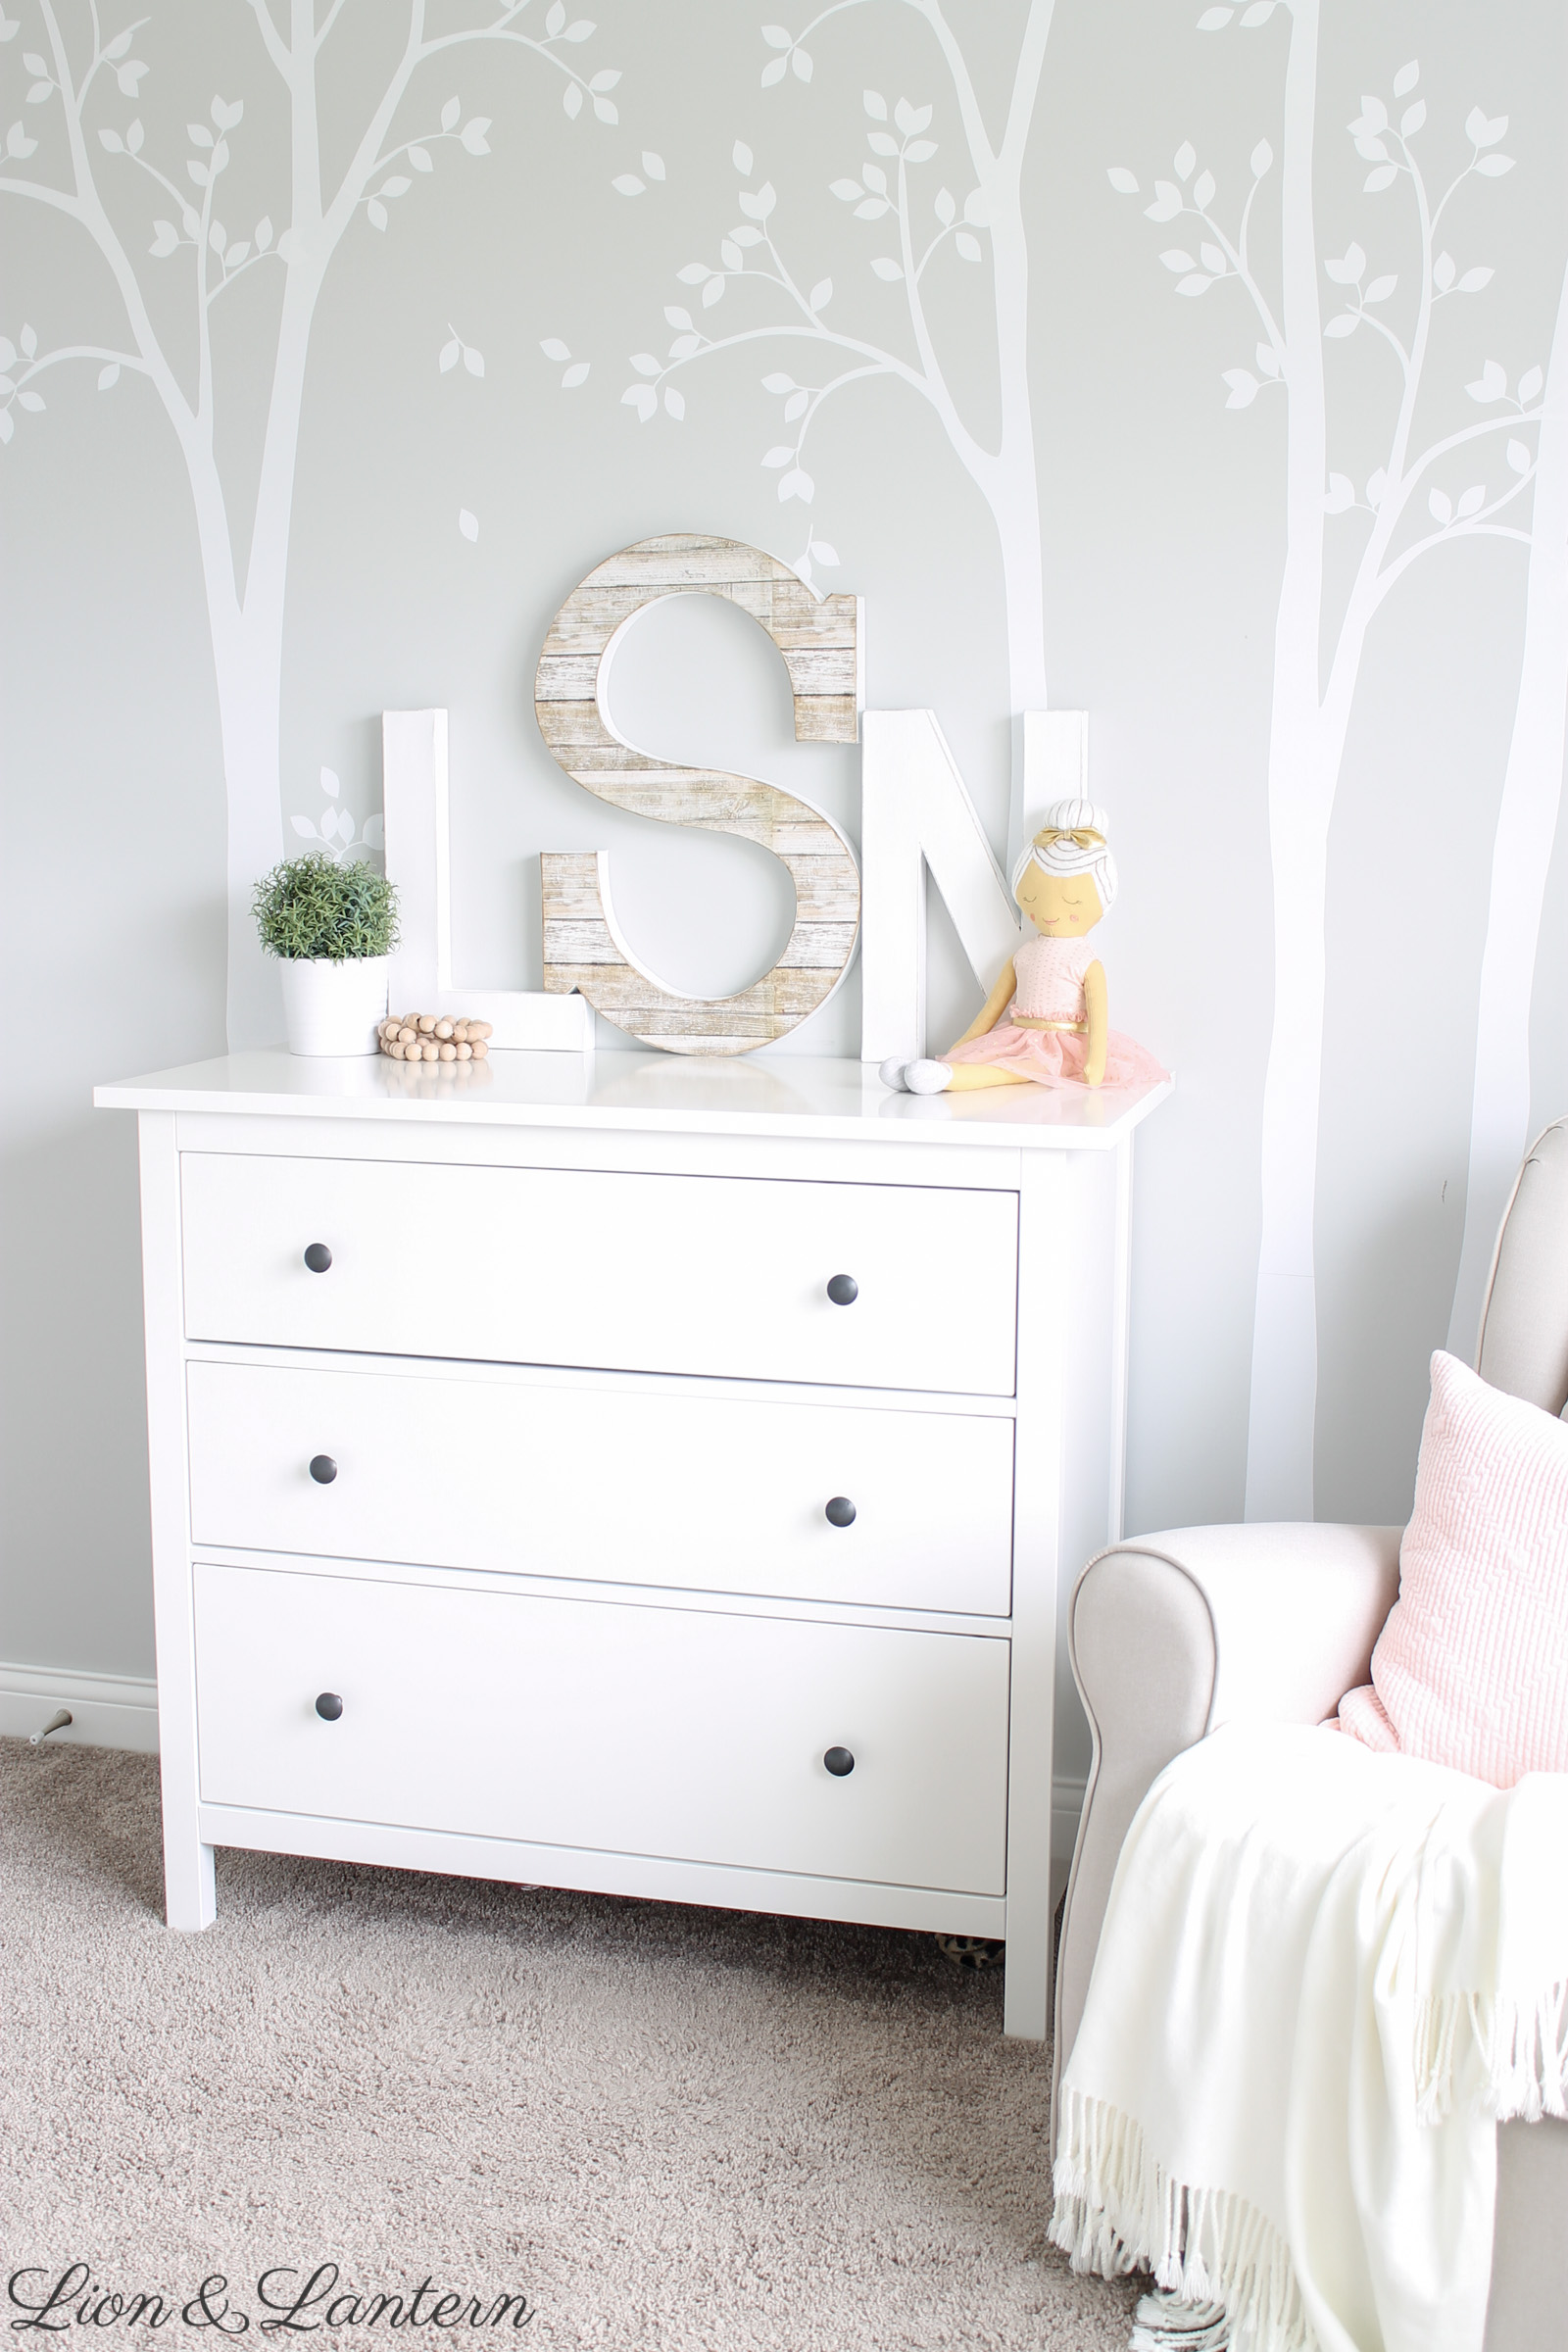 Safe Wall Letters | A Sweet Nursery Update at LionAndLantern.com | nursery wall decor, kids room wall art, safe nursery decor, pastel girl nursery, soft sweet nursery, forest tree wall decals